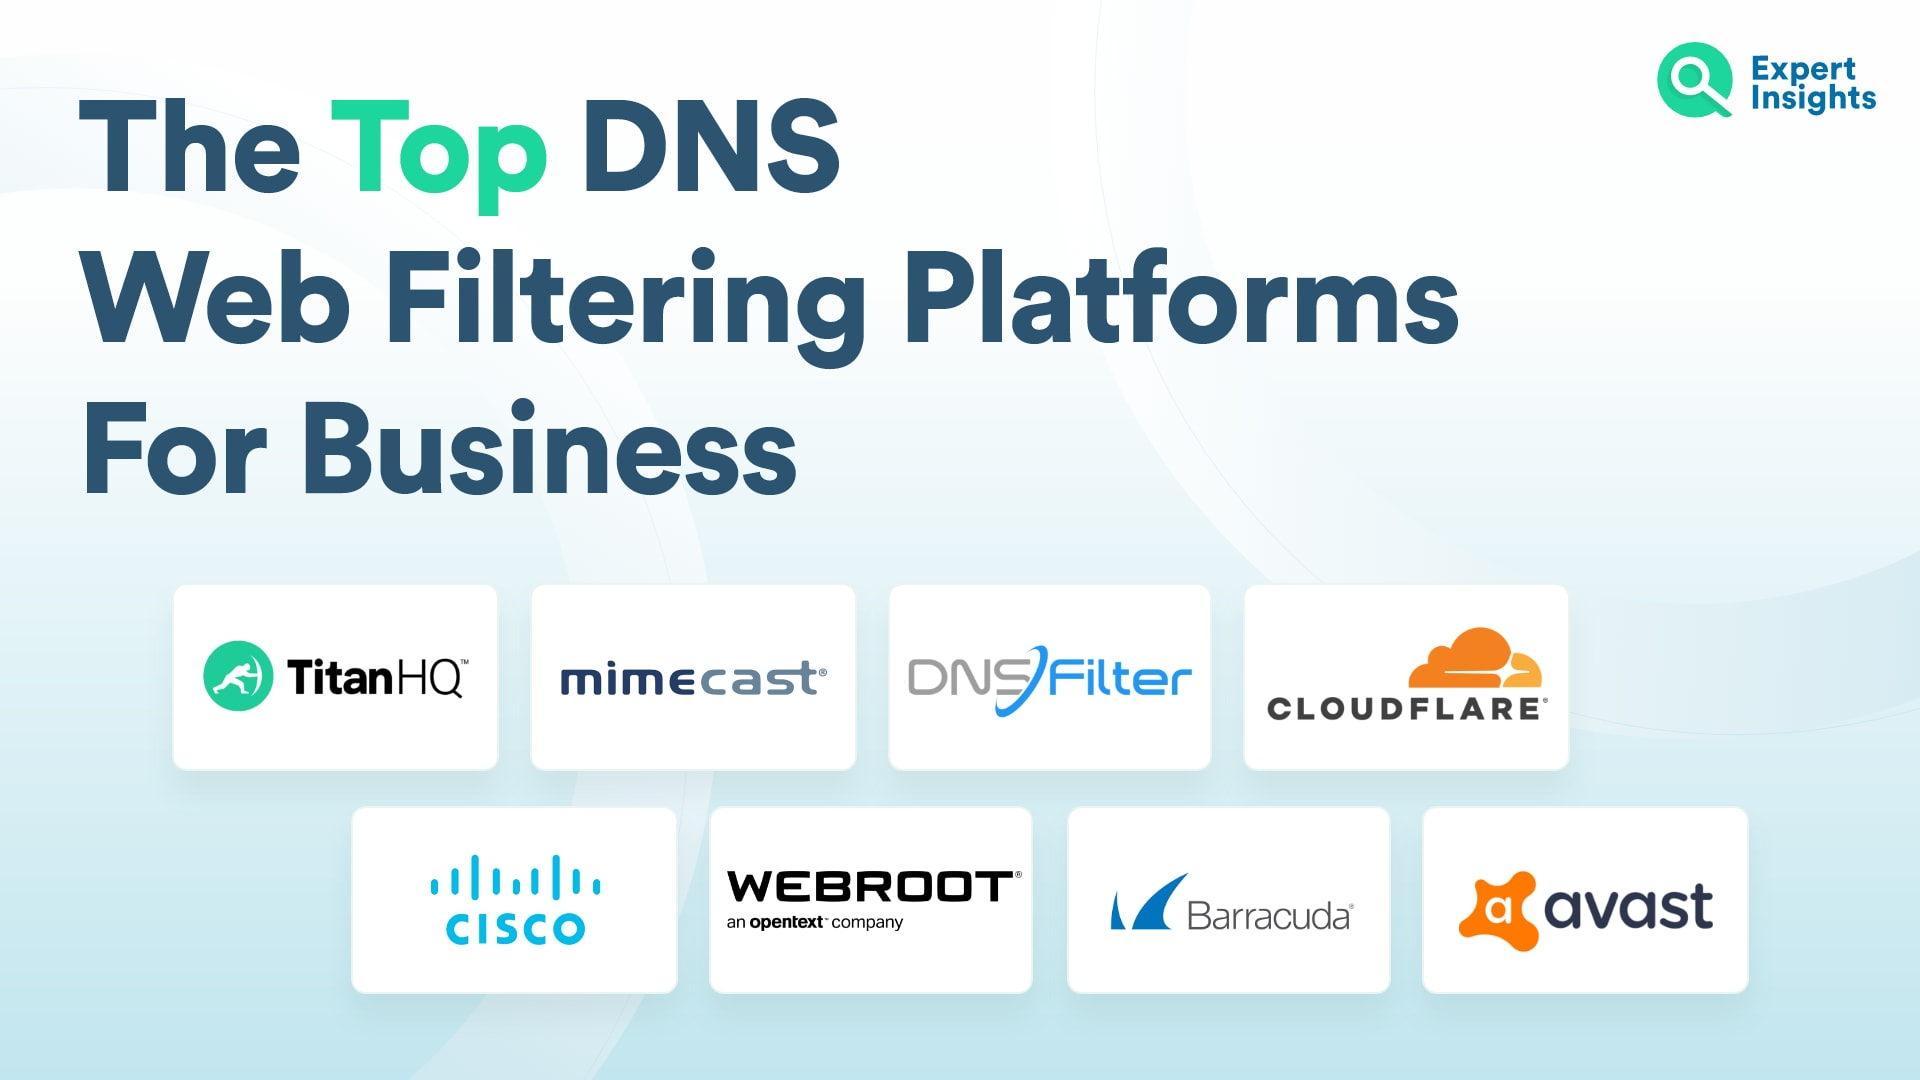 Top DNS Web Filtering Platforms For Business - Expert Insights